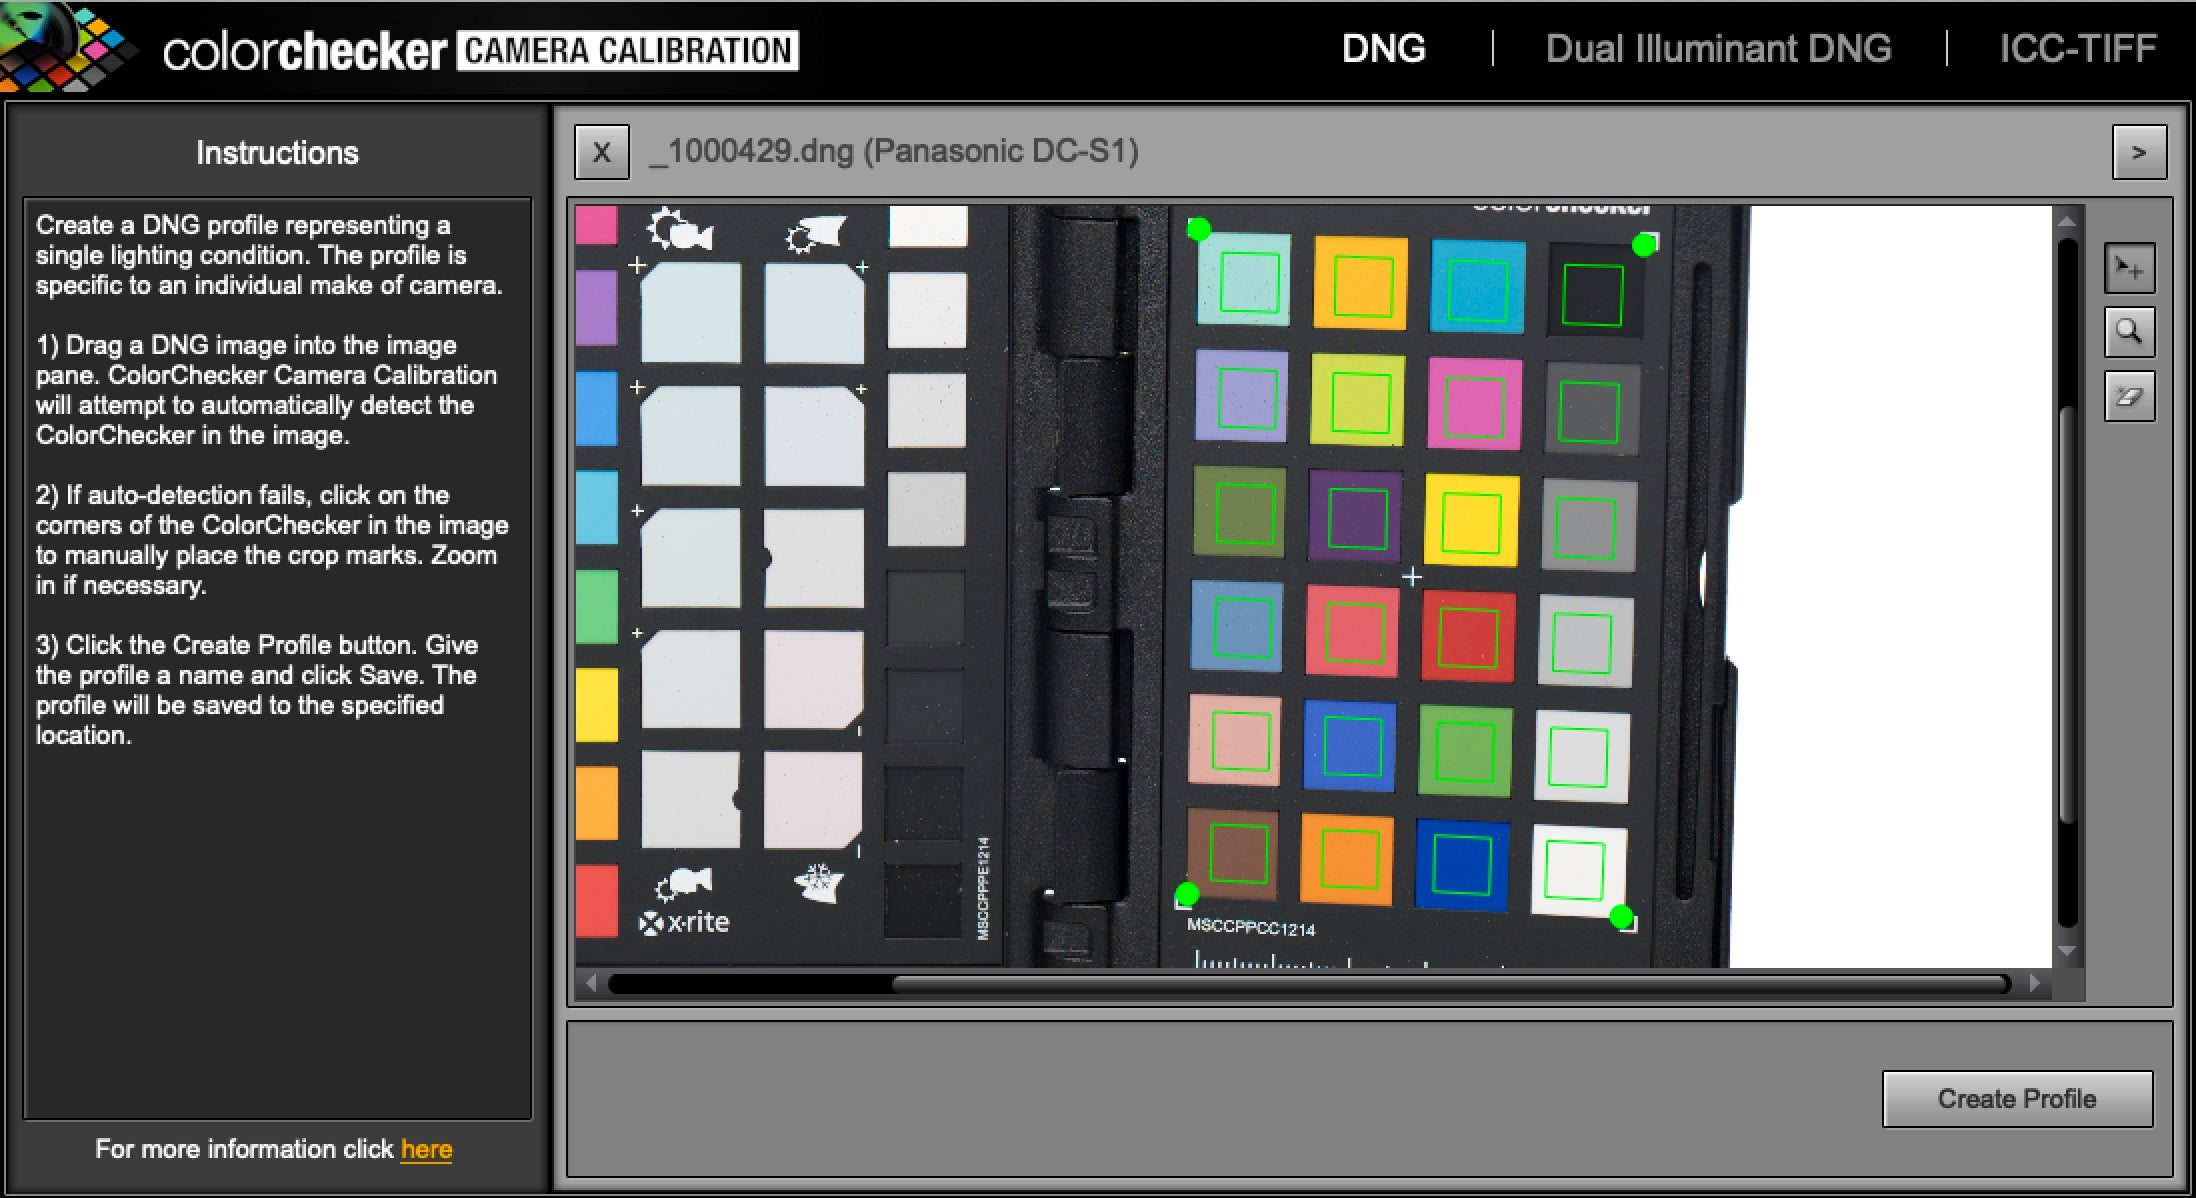 ColorChecker Camera Calibration Software